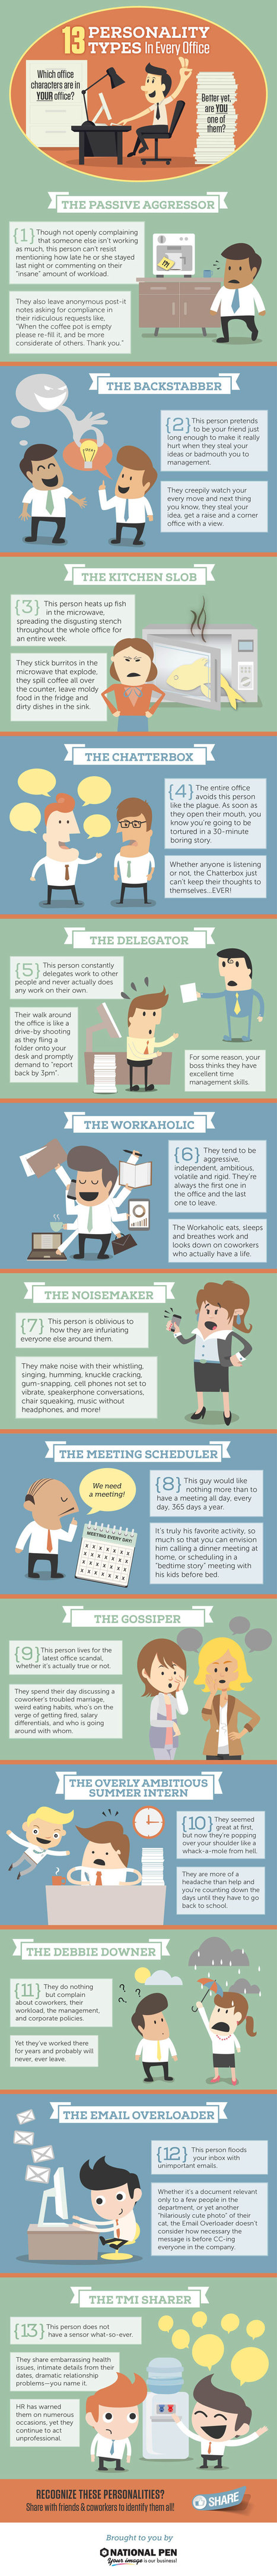 13 Personality Types in Every Office #infographic | MarketingHits | Scoop.it